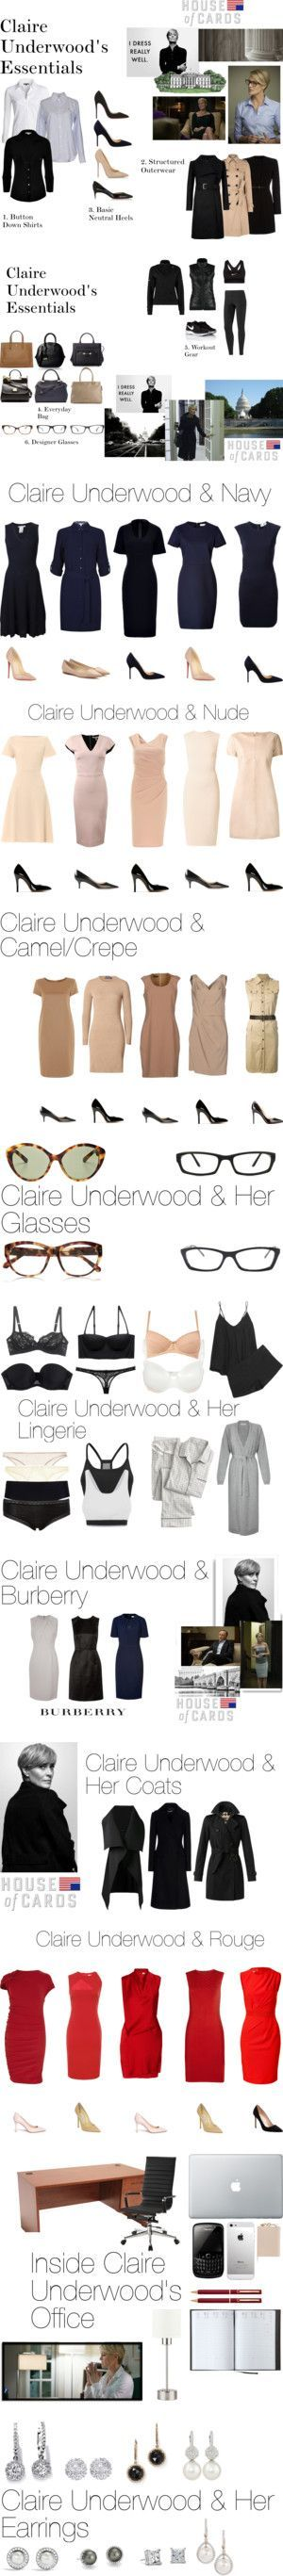 Claire Underwood's Wardrobe by oliviapope411 on Polyvore featuring mode, NIC+ZOE, Ralph Lauren, Marella, Hobbs, Ted Baker, Manolo Blahnik, Jimmy Choo, Christian Louboutin and James Perse